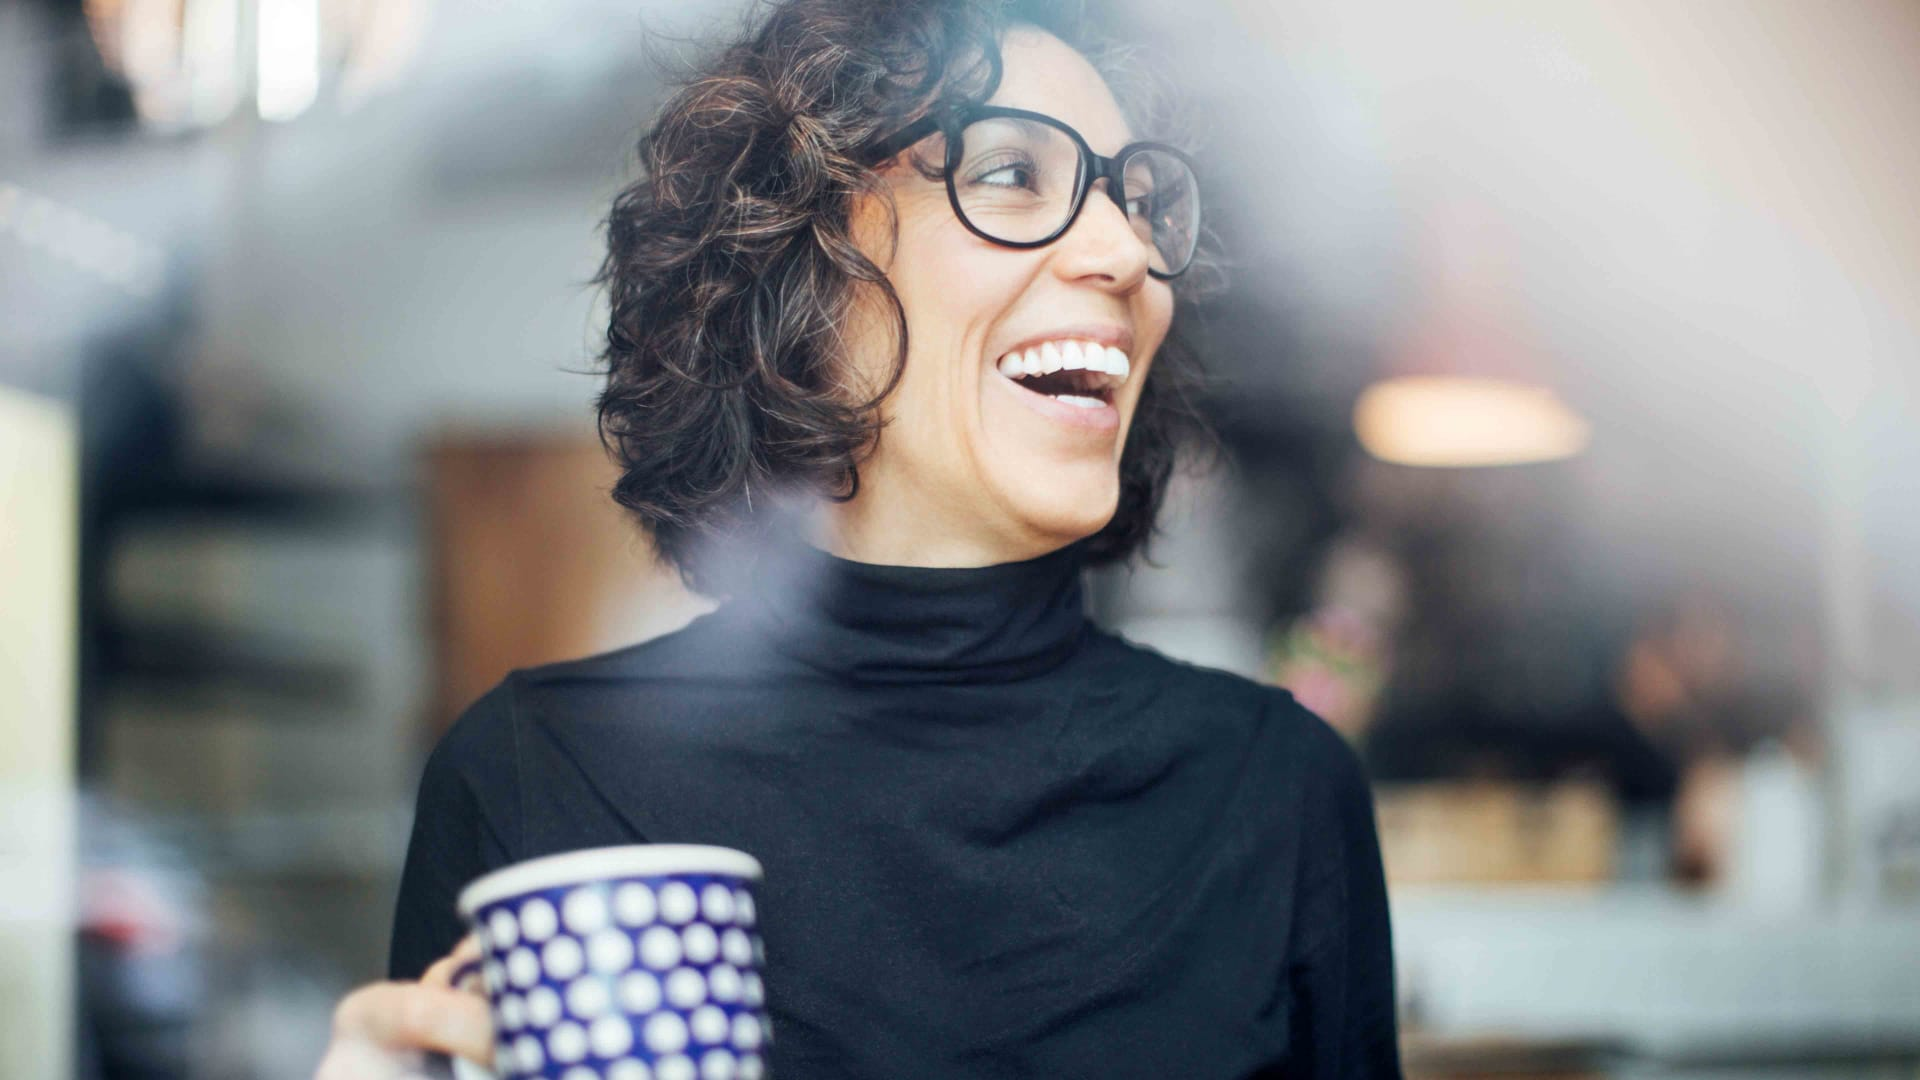 4 Strategies to Raise Employee Happiness and Boost Their Mental Health